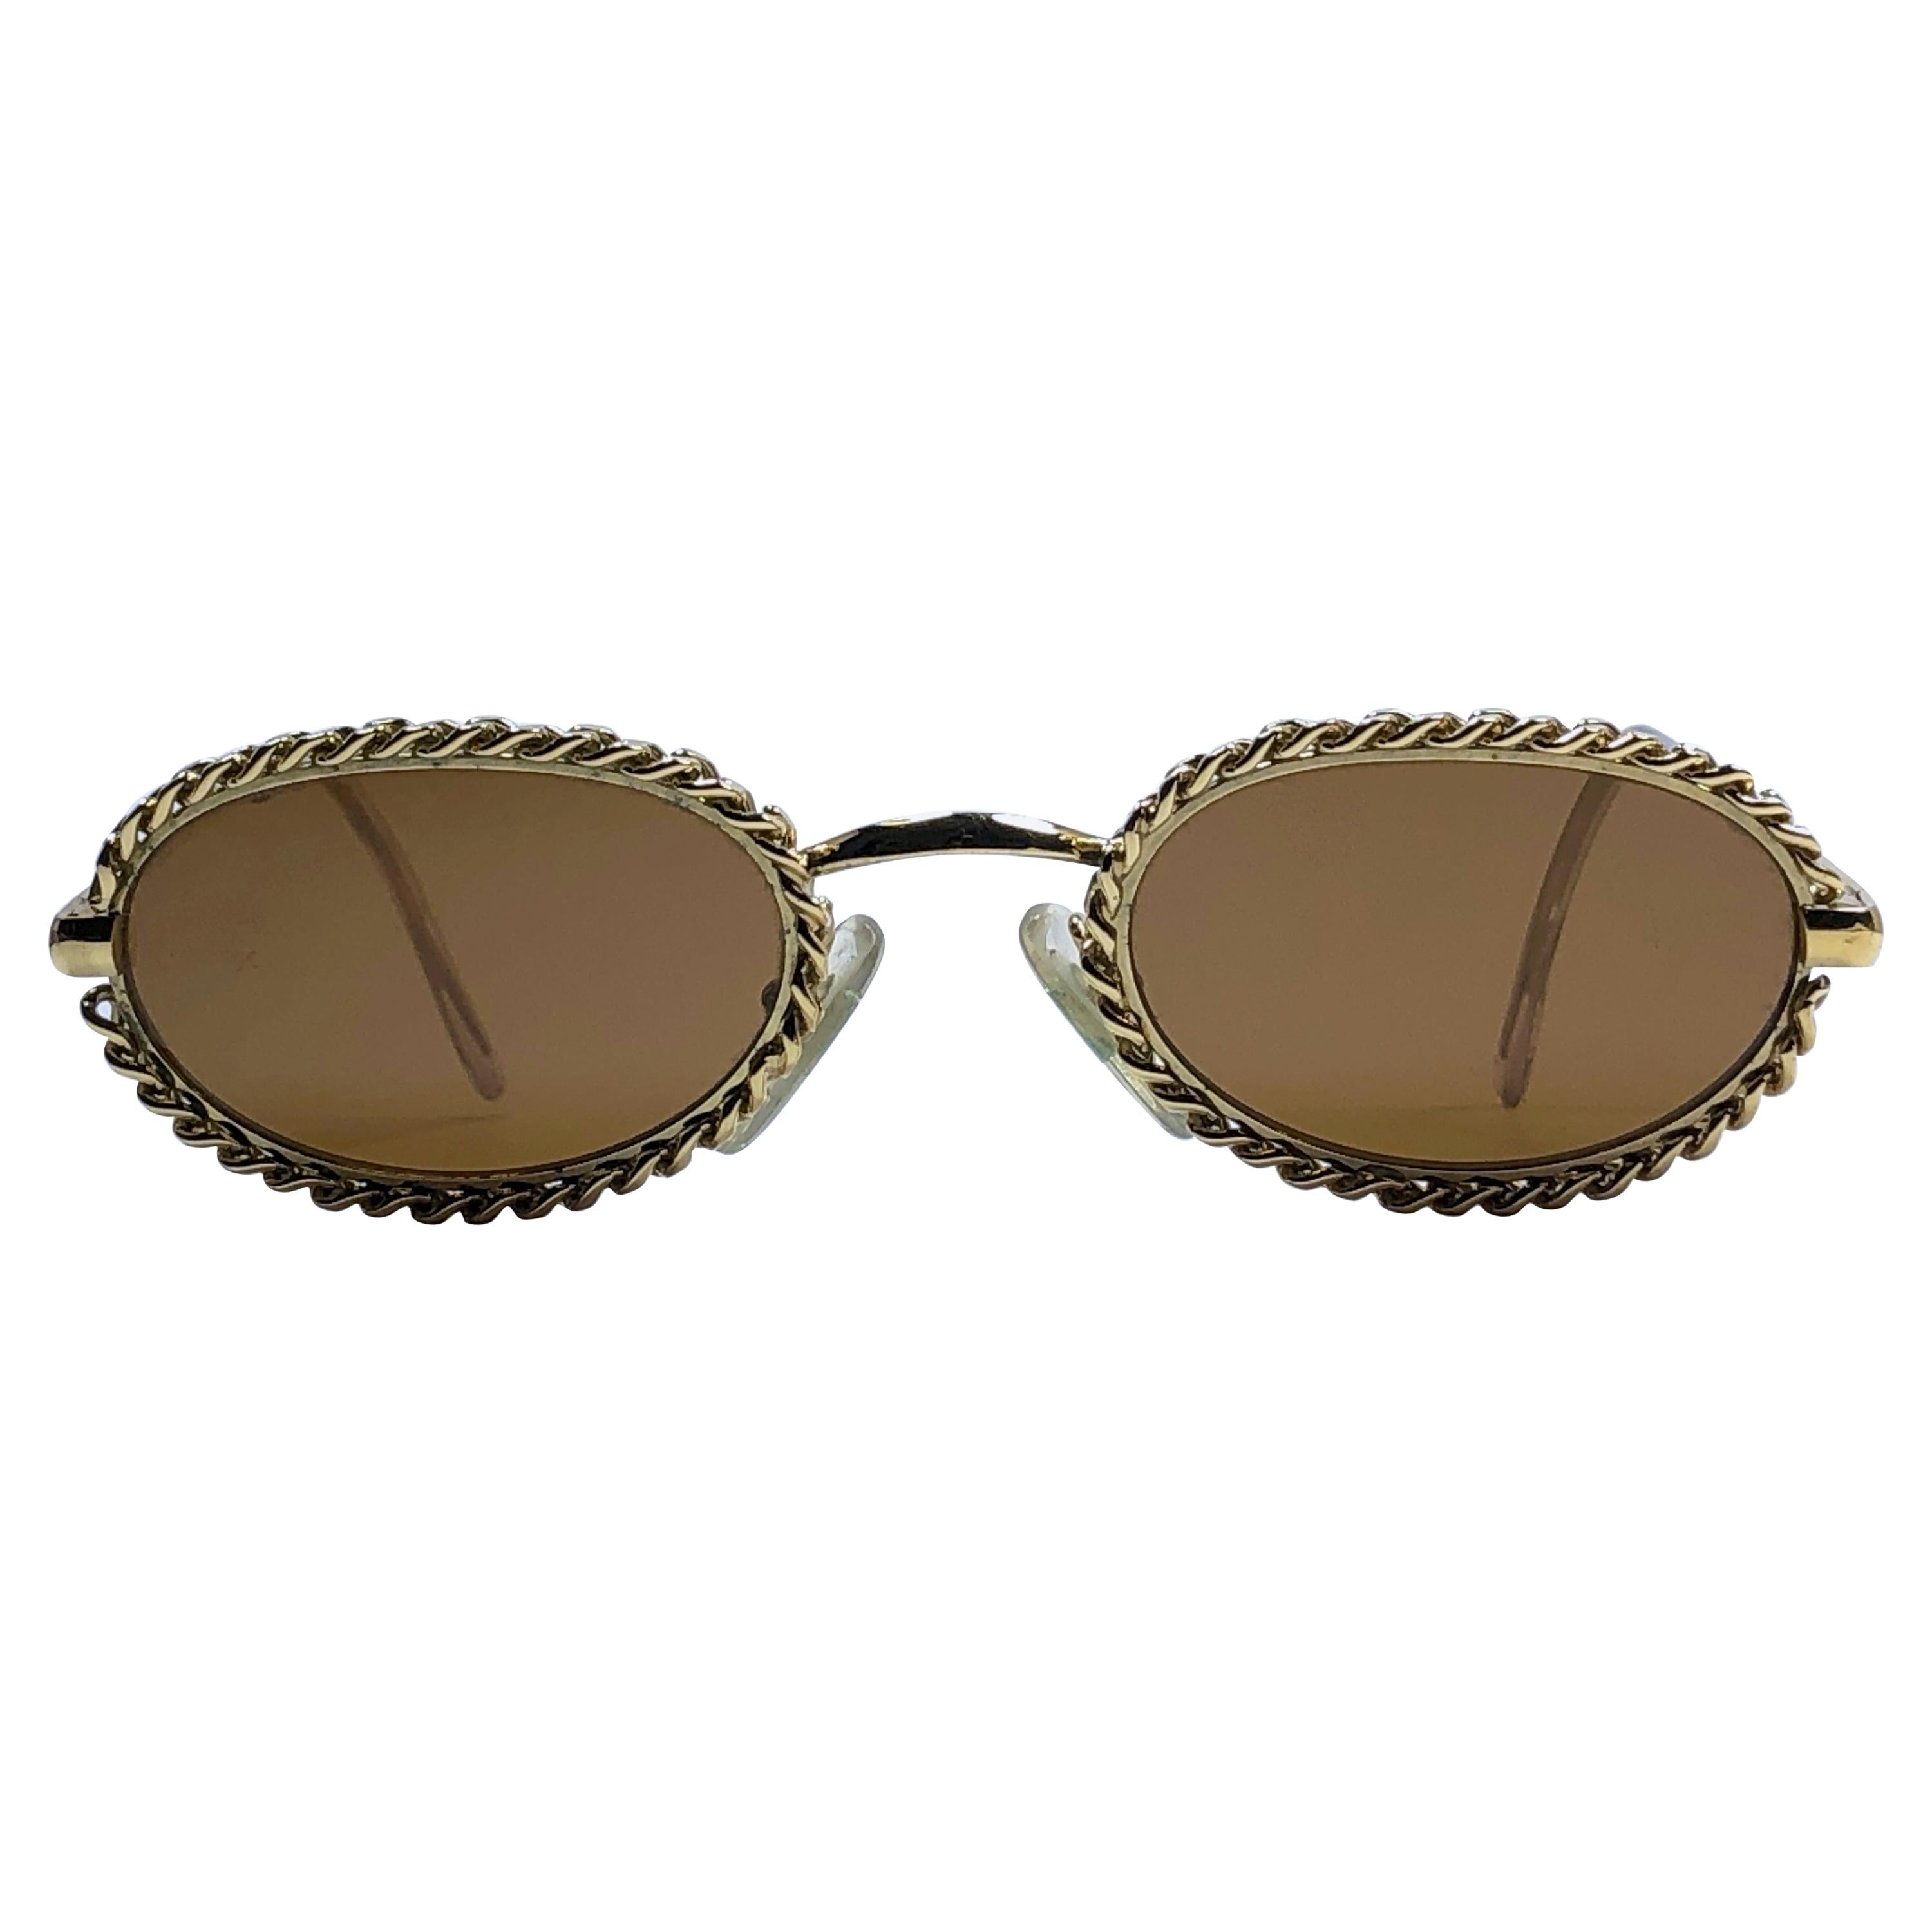 Mint Vintage Moschino Oval Gold Chain 1990 Sunglasses Made in Italy